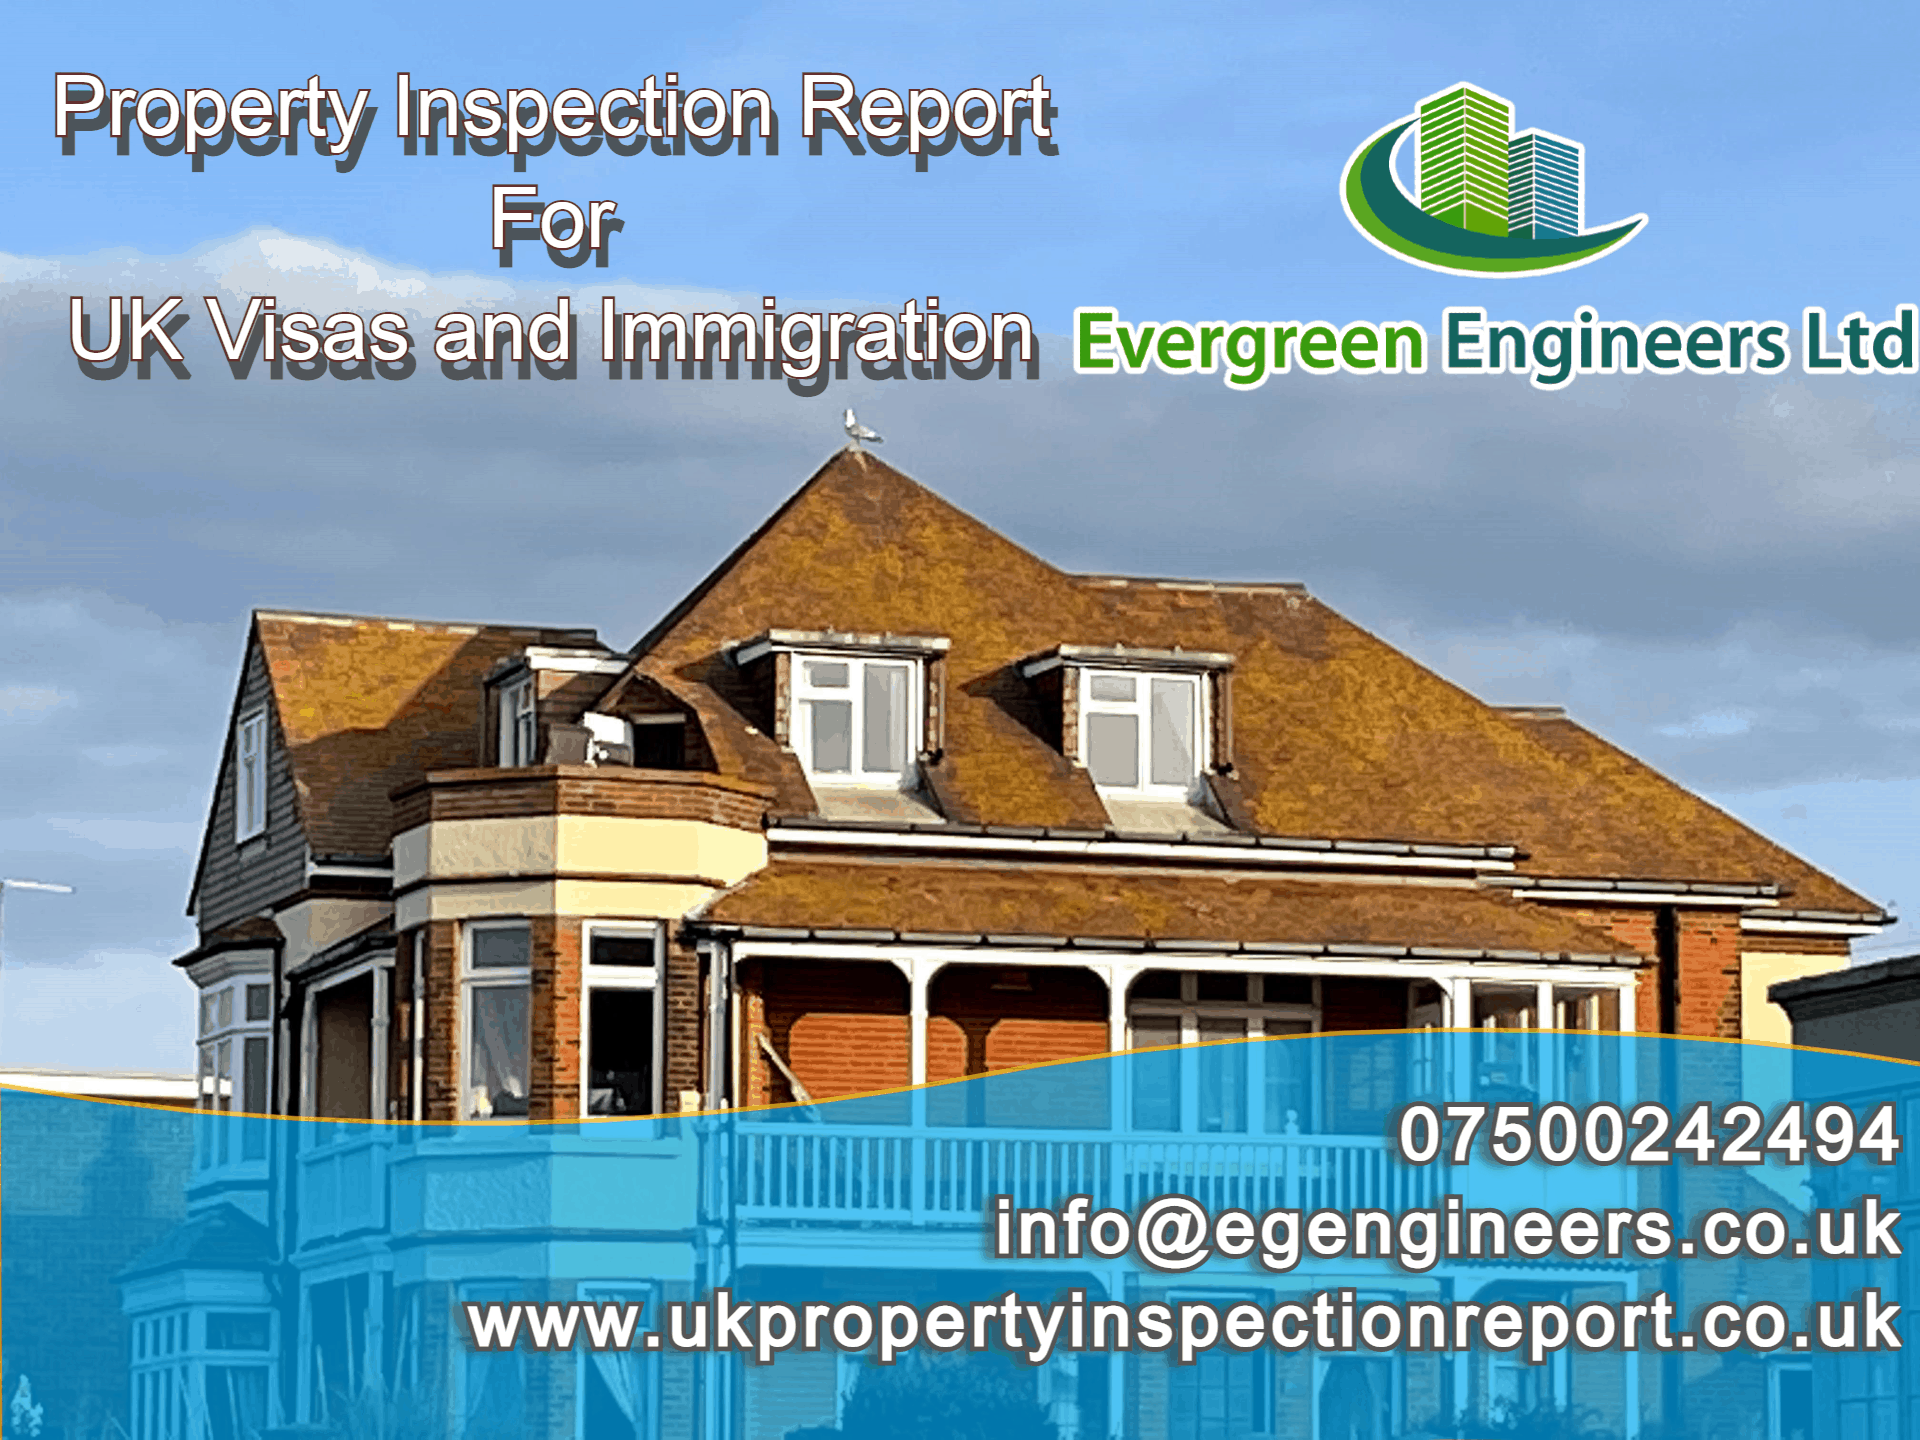 Property inspection report St Albans